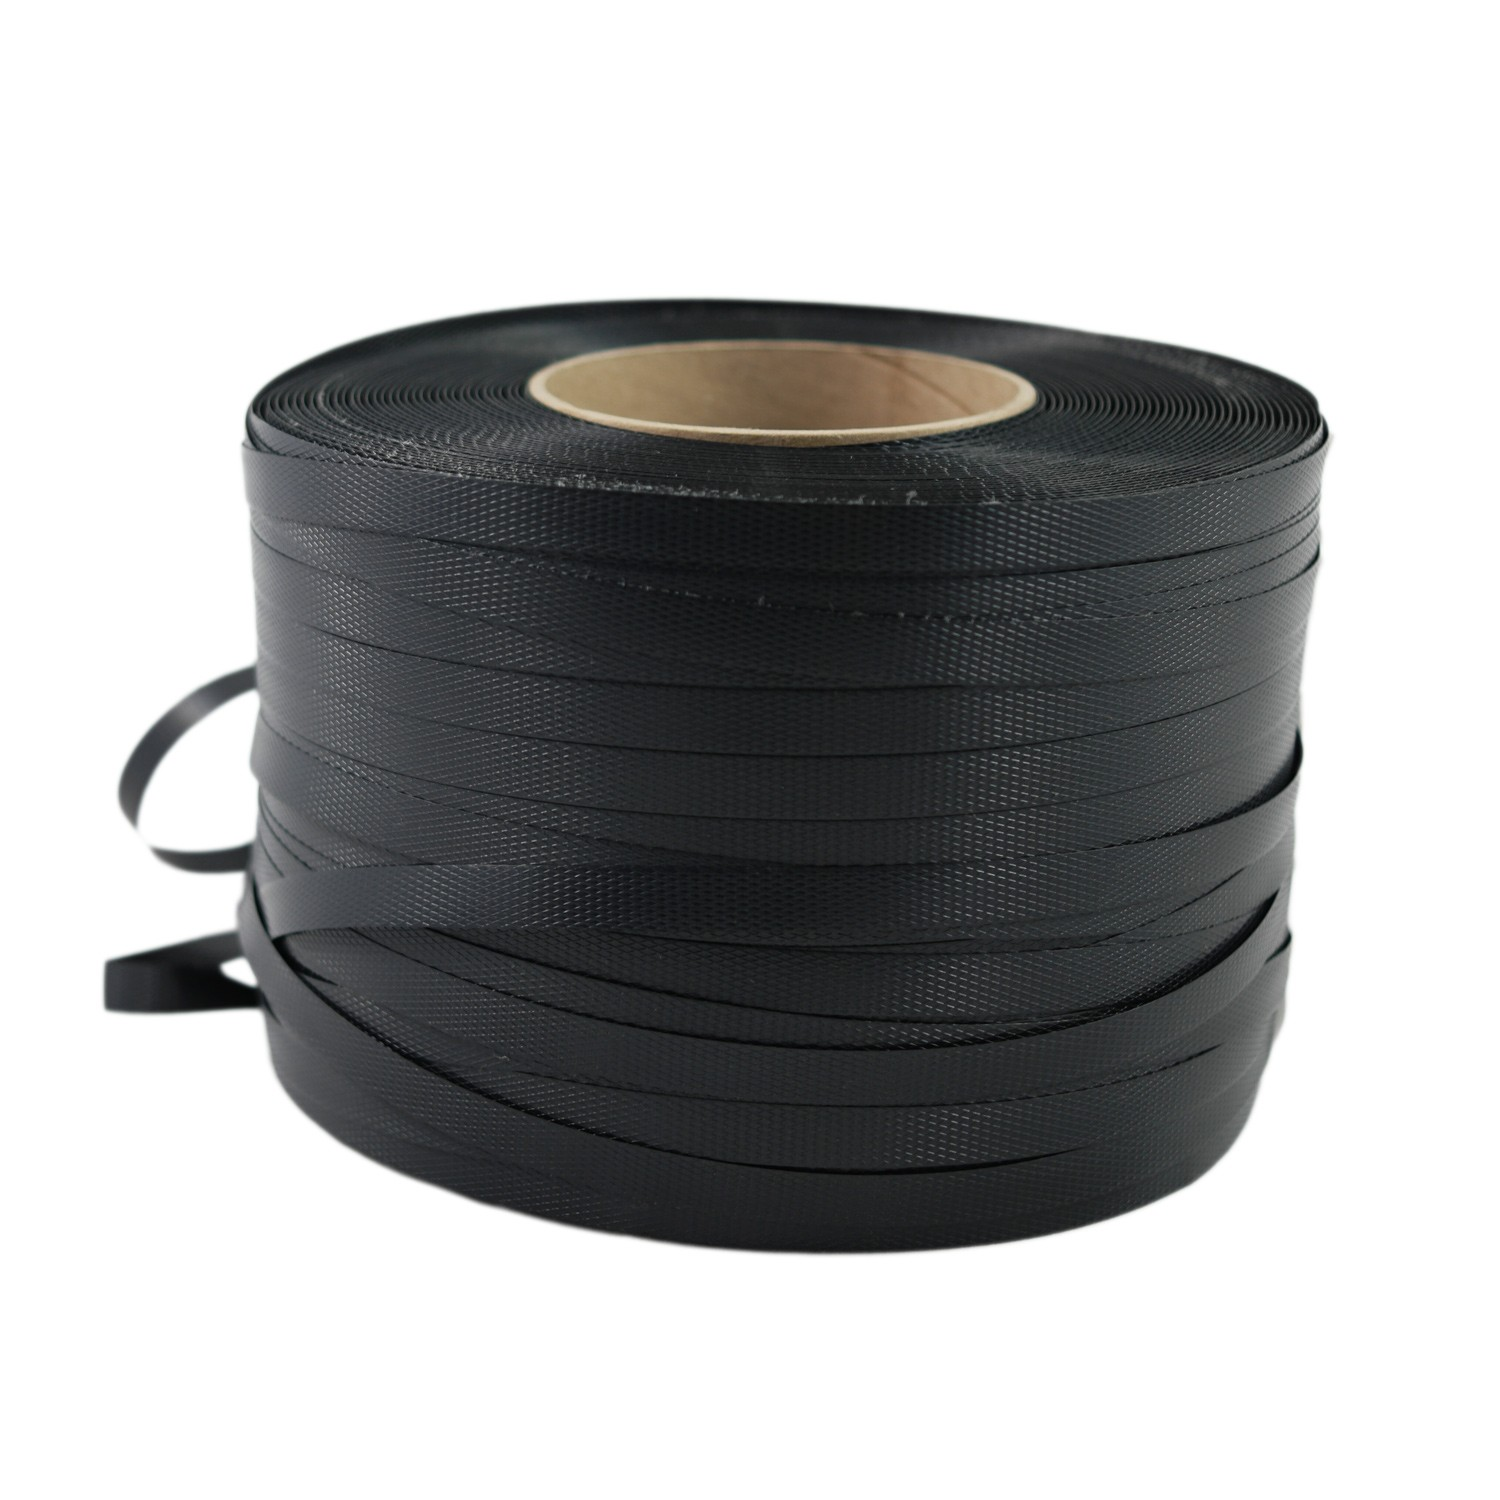 "TOTALPACK® 1/2"" x 0.024"" x 9900' Black 9 x 8"" Machine Grade Polypropylene Strapping - Embossed 1 Unit"